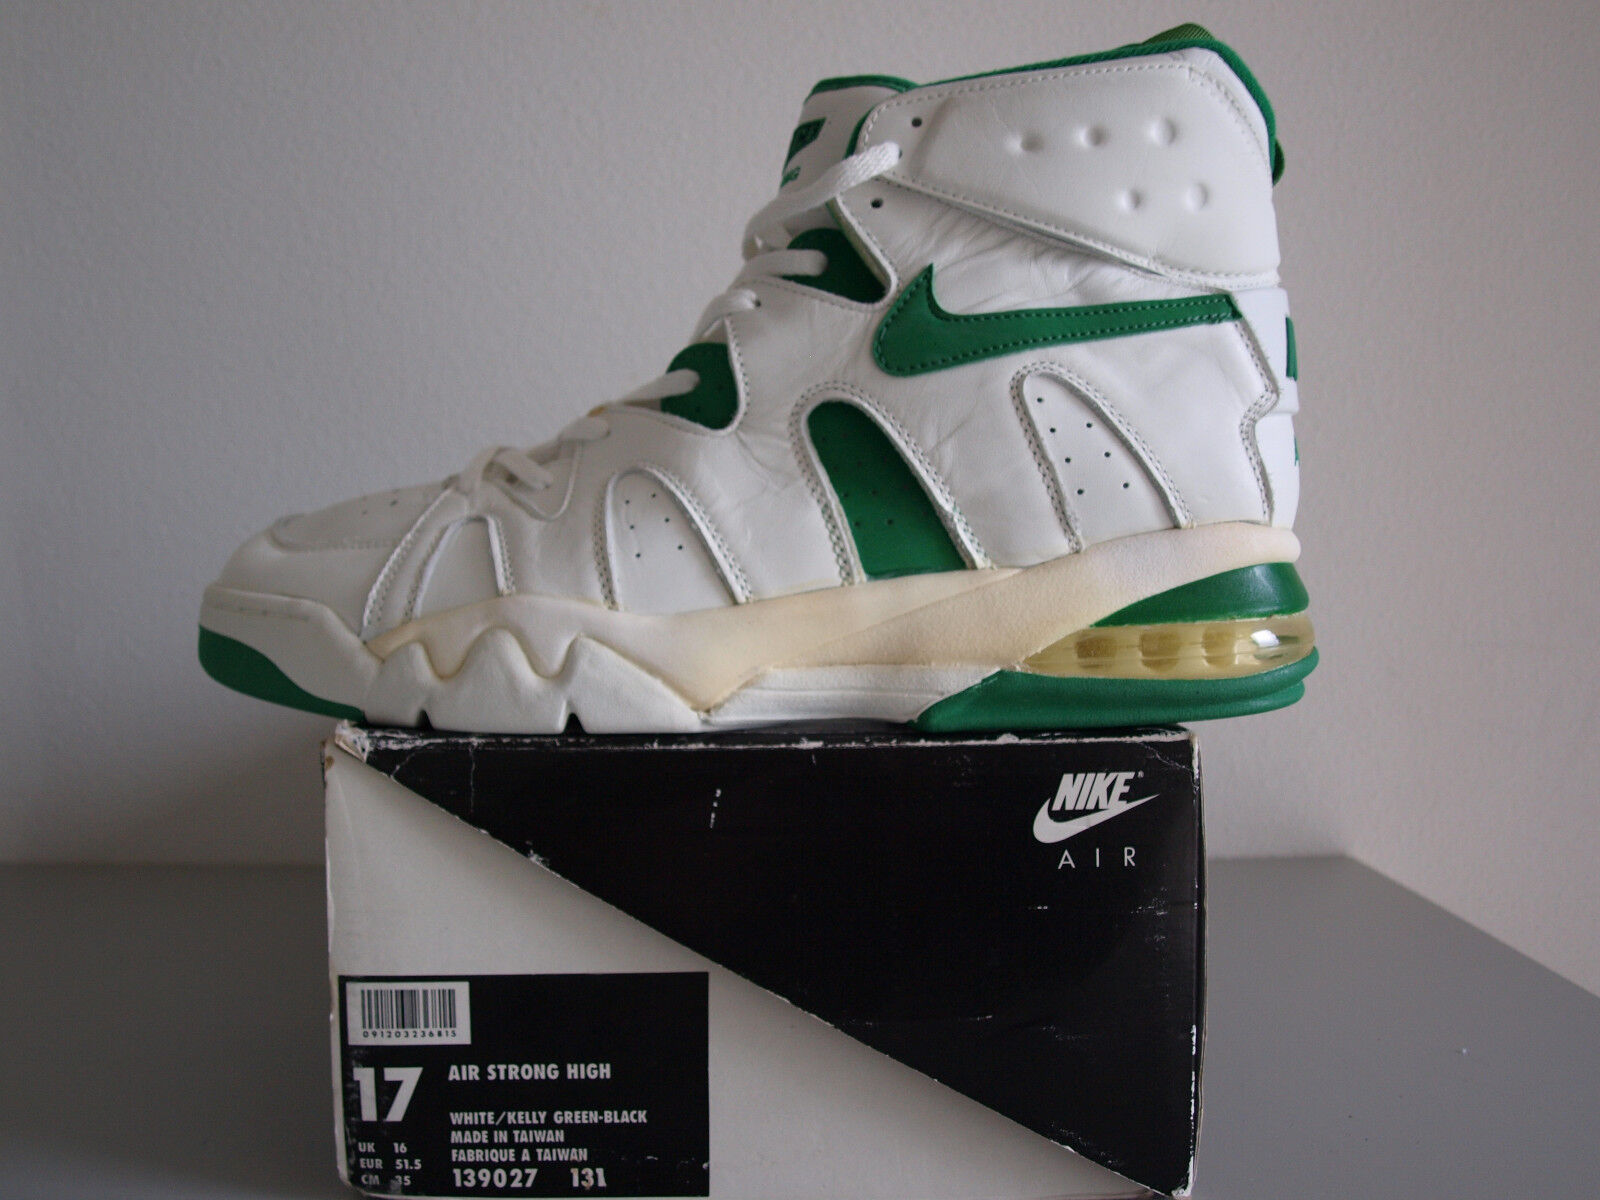 Nike Air Max Force Strong High 1994 US 17   Eur 51,5 Vintage Basketball shoes